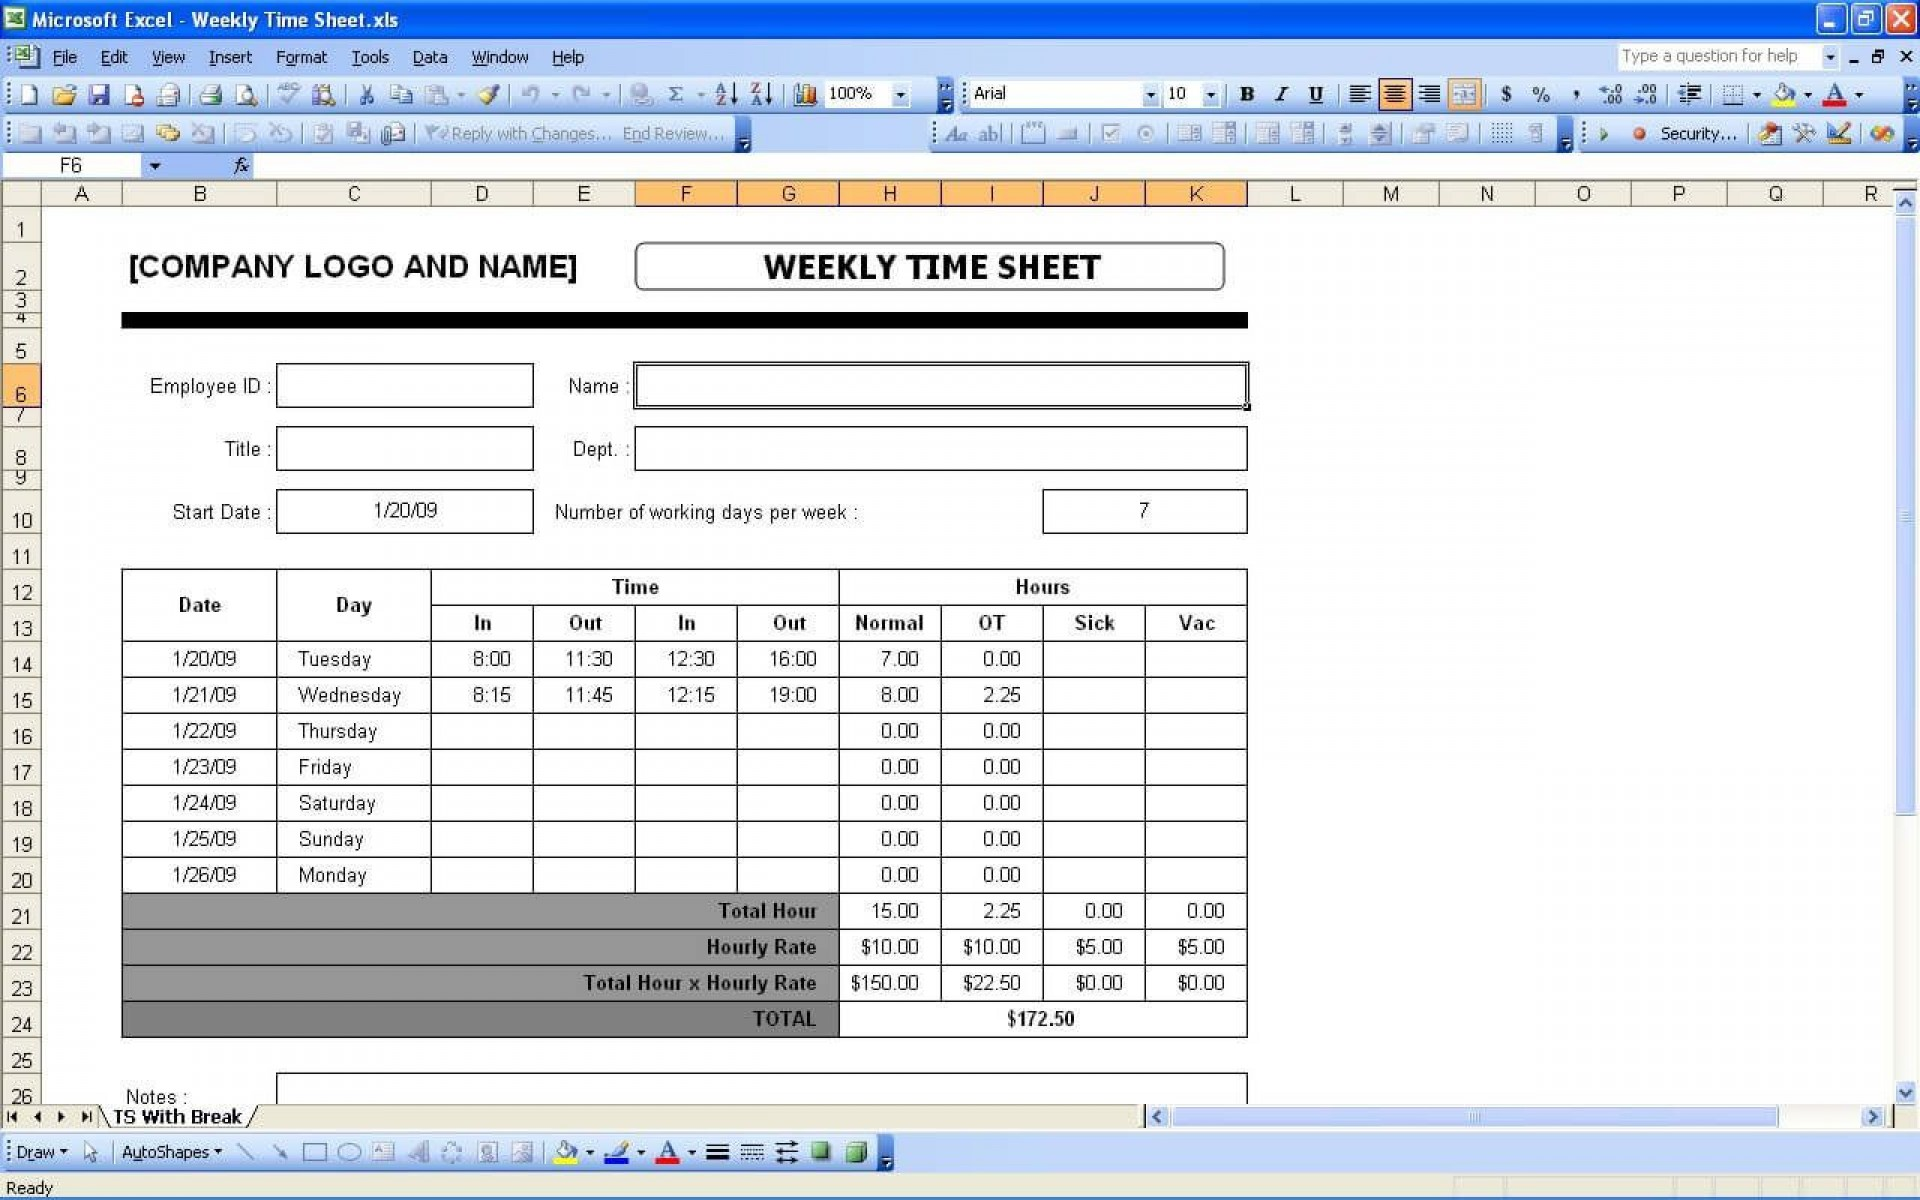 004 Archaicawful Weekly Timesheet Template Excel Concept  Simple Free1920